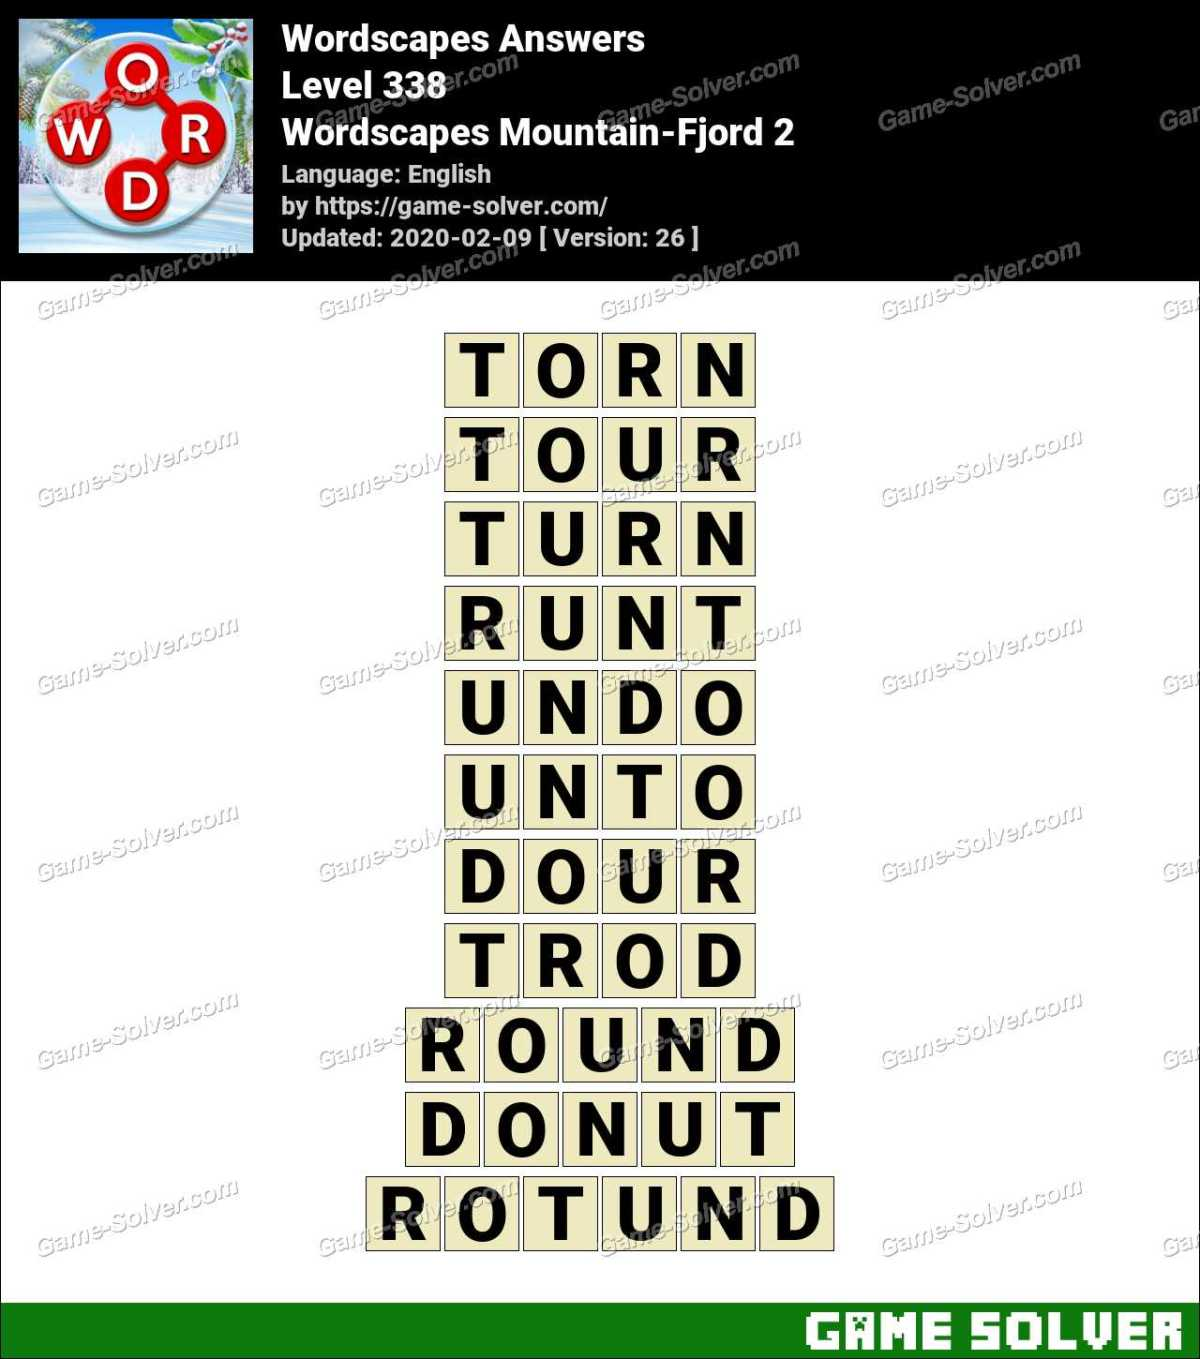 Wordscapes Mountain-Fjord 2 Answers